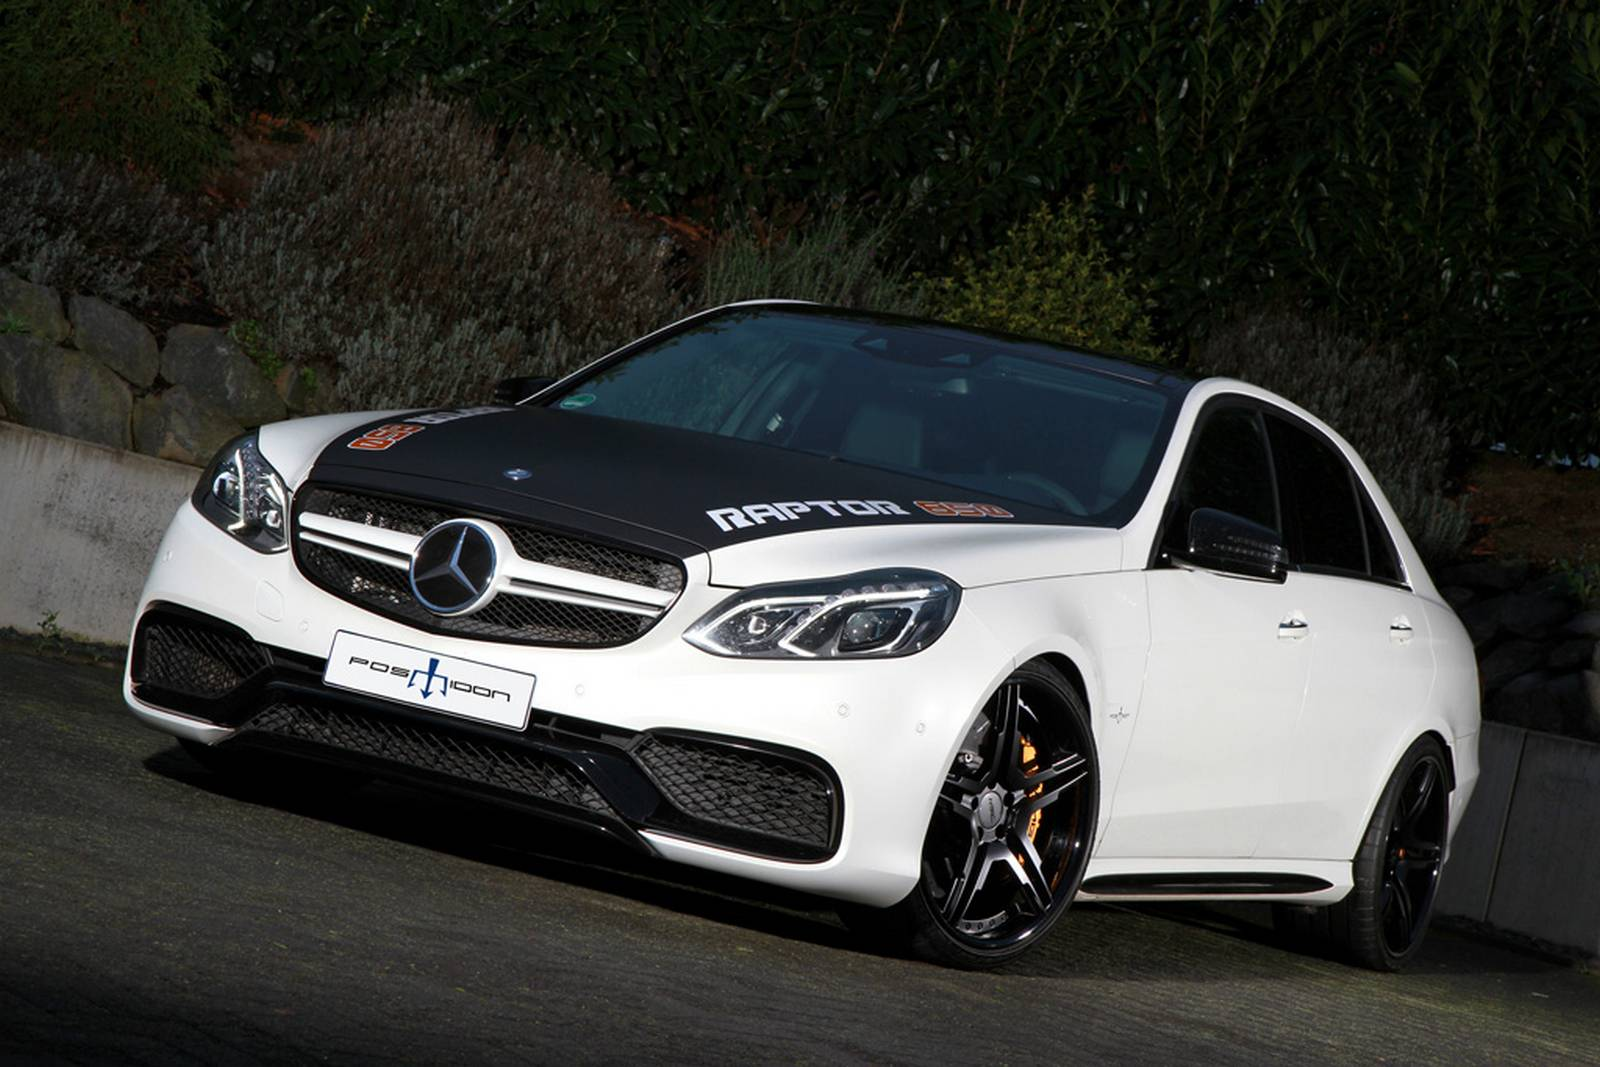 official mercedes benz e63 amg by posaidon gtspirit